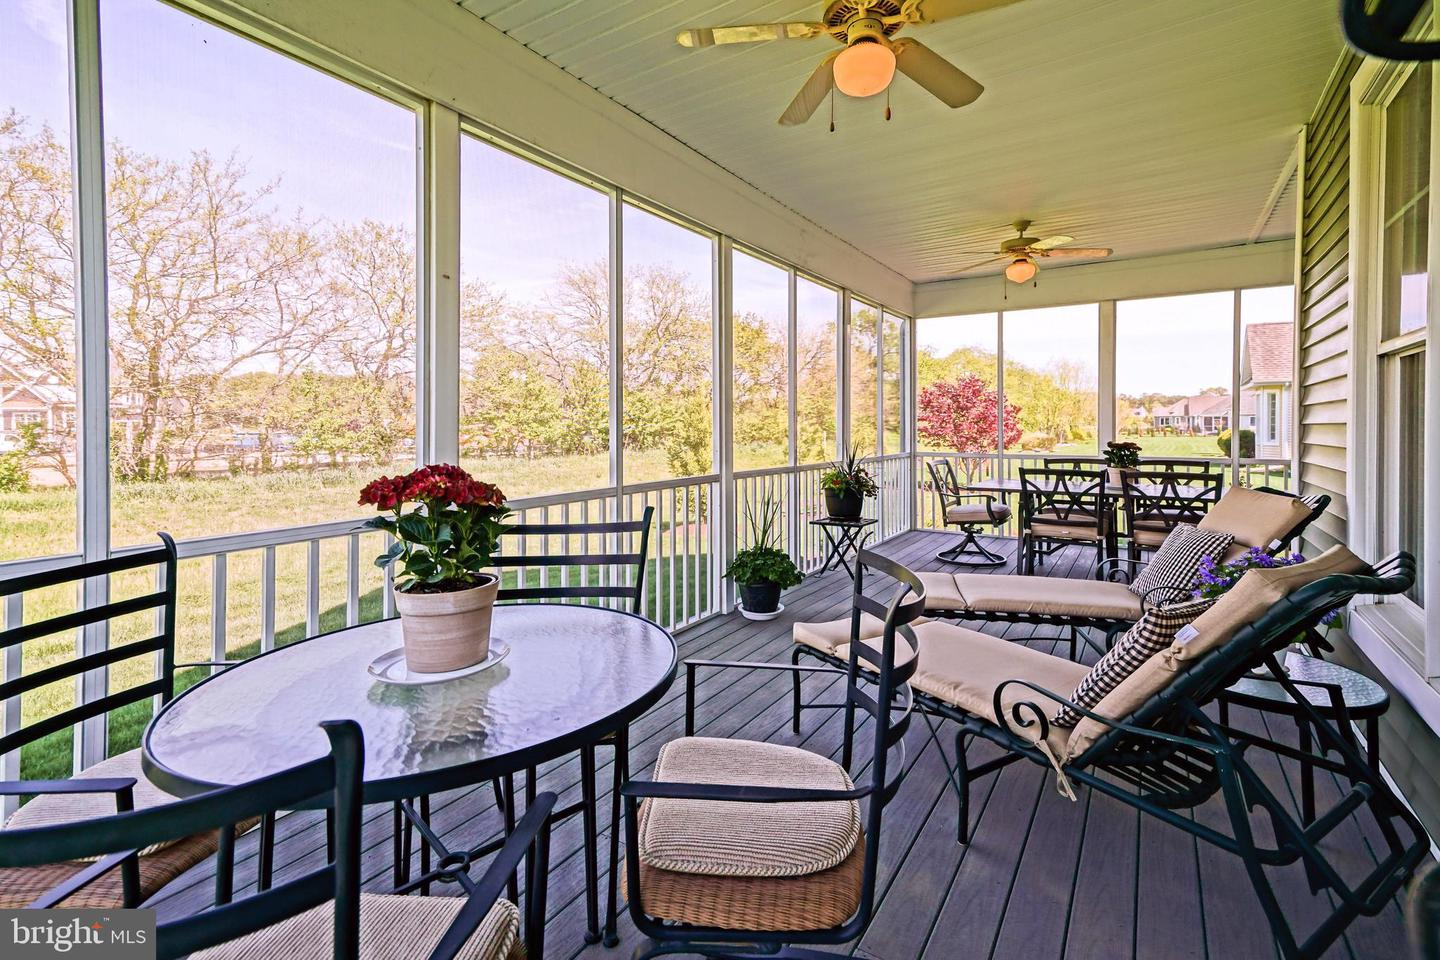 DESU139128-301667382967-2019-08-05-10-43-56 35222 Overfalls Dr N | Lewes, DE Real Estate For Sale | MLS# Desu139128  - Lee Ann Group